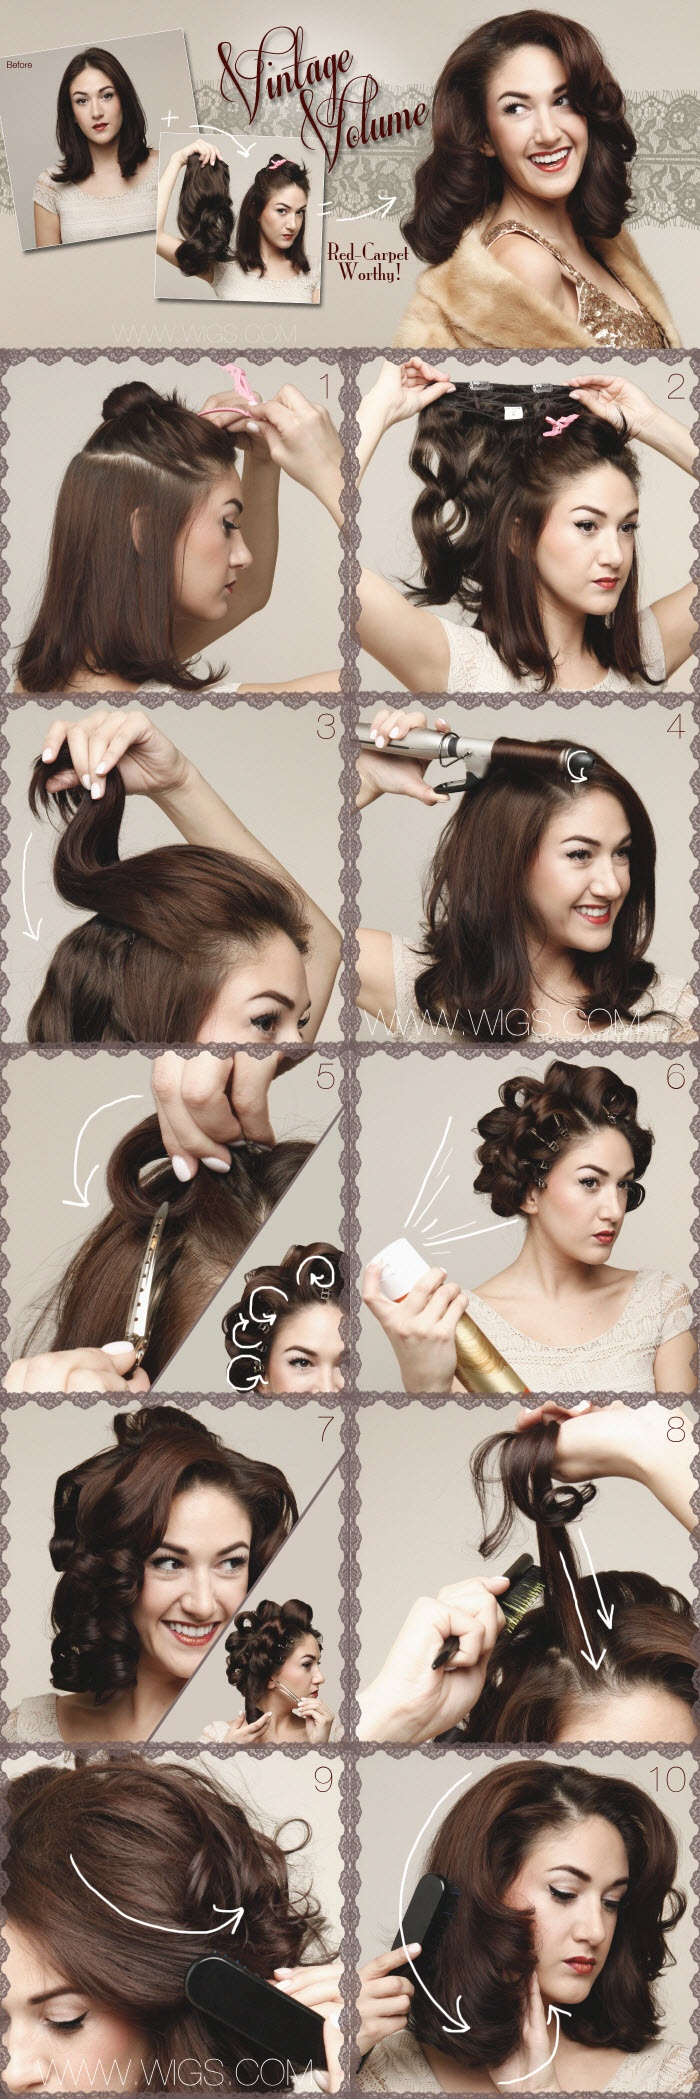 10 Images About Hair Amp Make Up Vintage And Otherwise